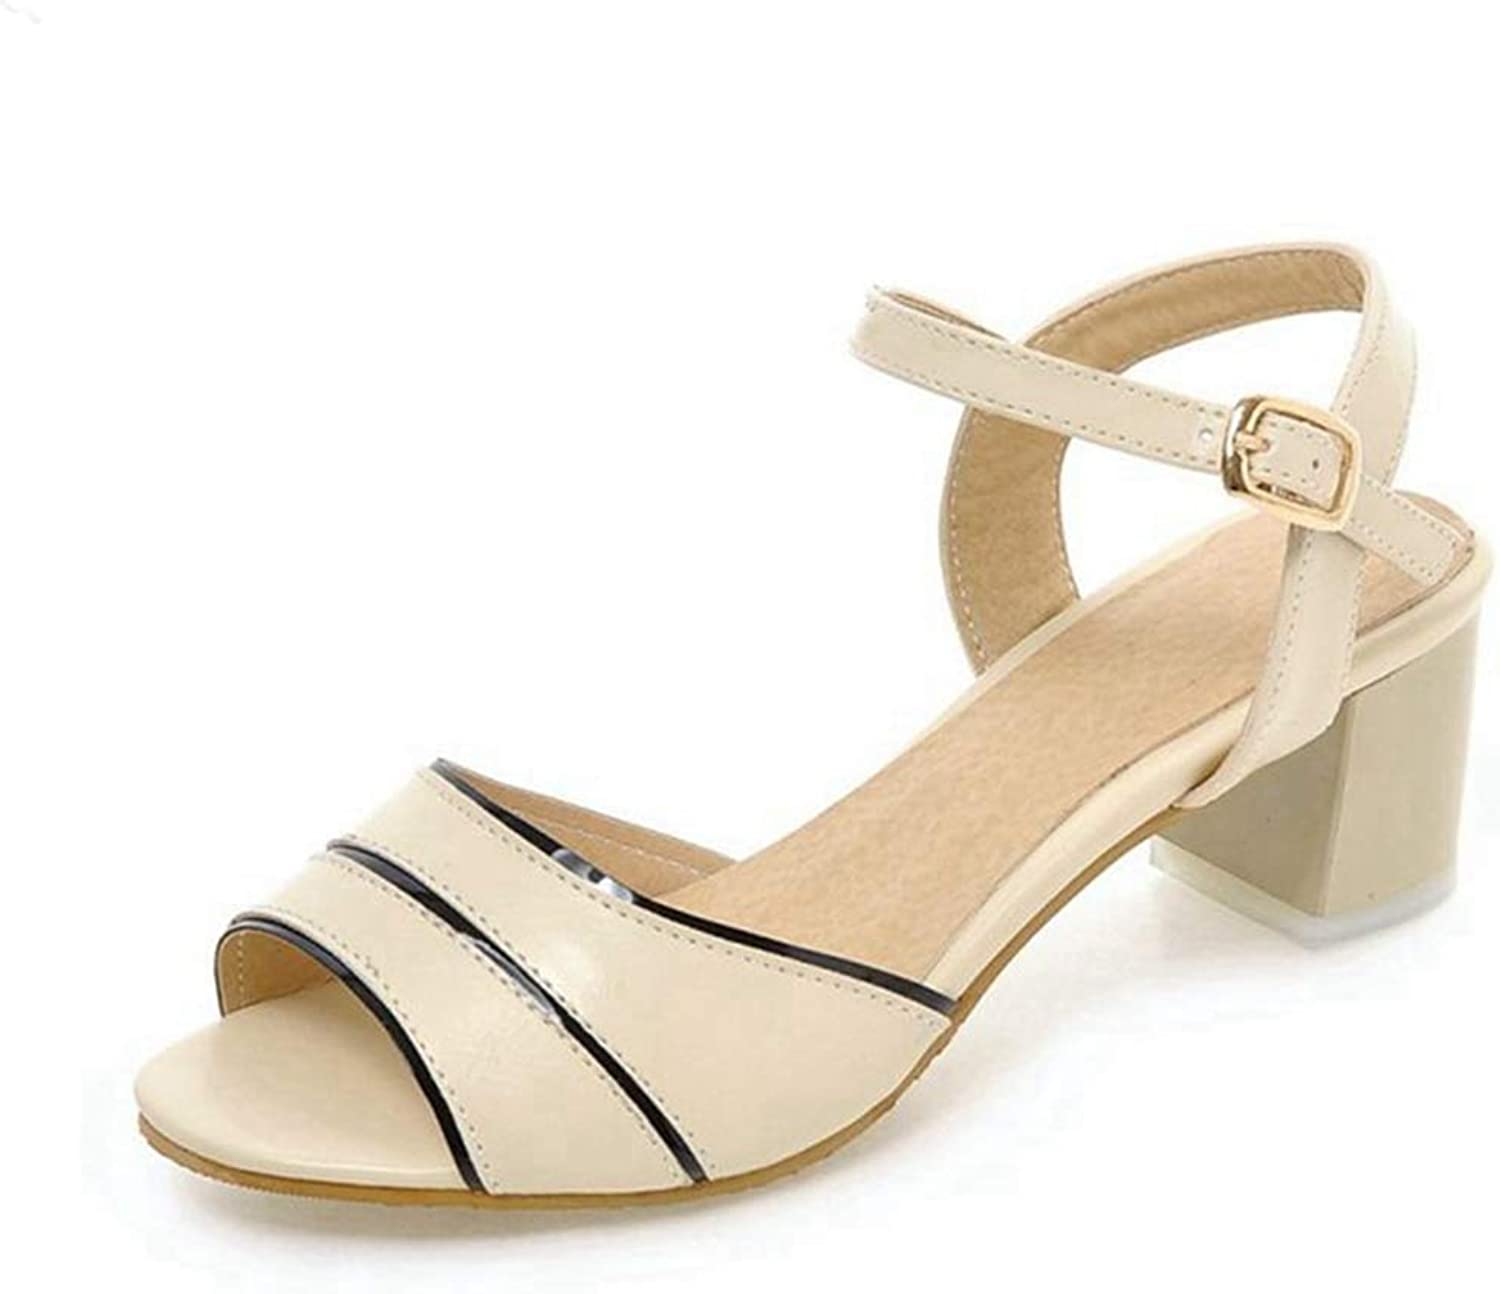 Girls Sandal Women Mid High-Heeled Sandals Square Heel Ladies Fashion Plus Size Summer shoes